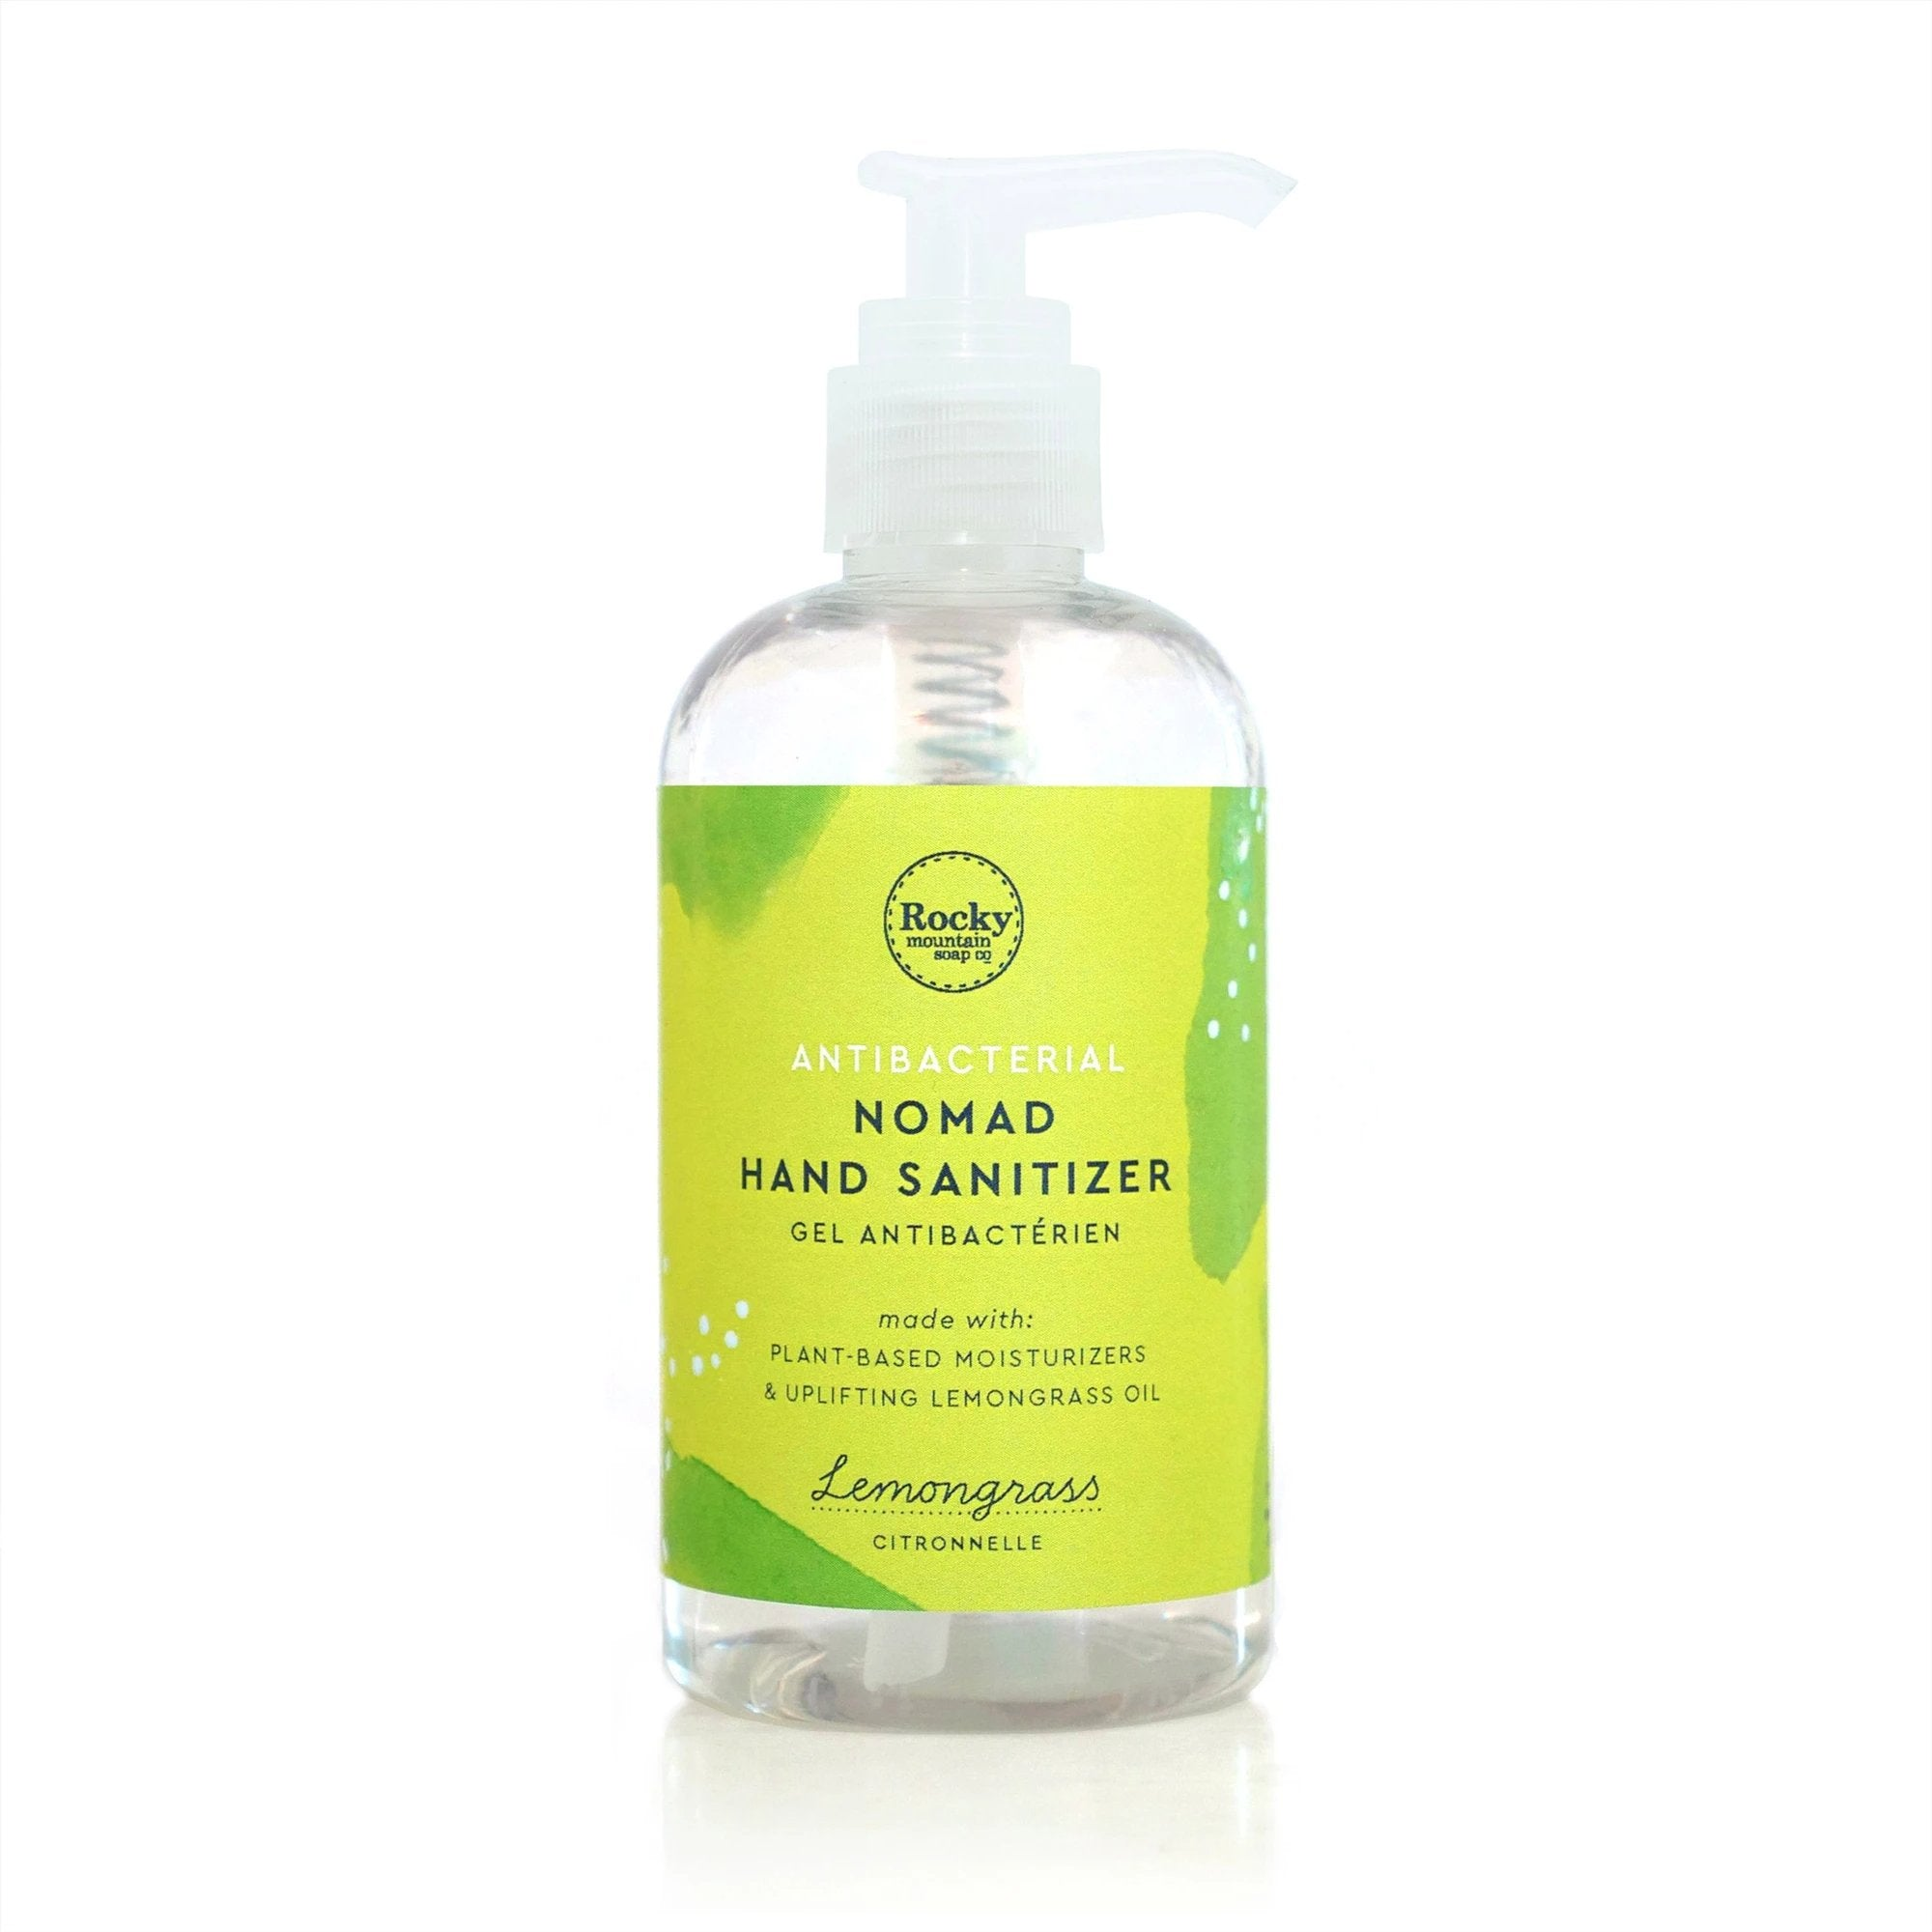 Nomad Hand Sanitizer by Rocky Mountain Soap Company